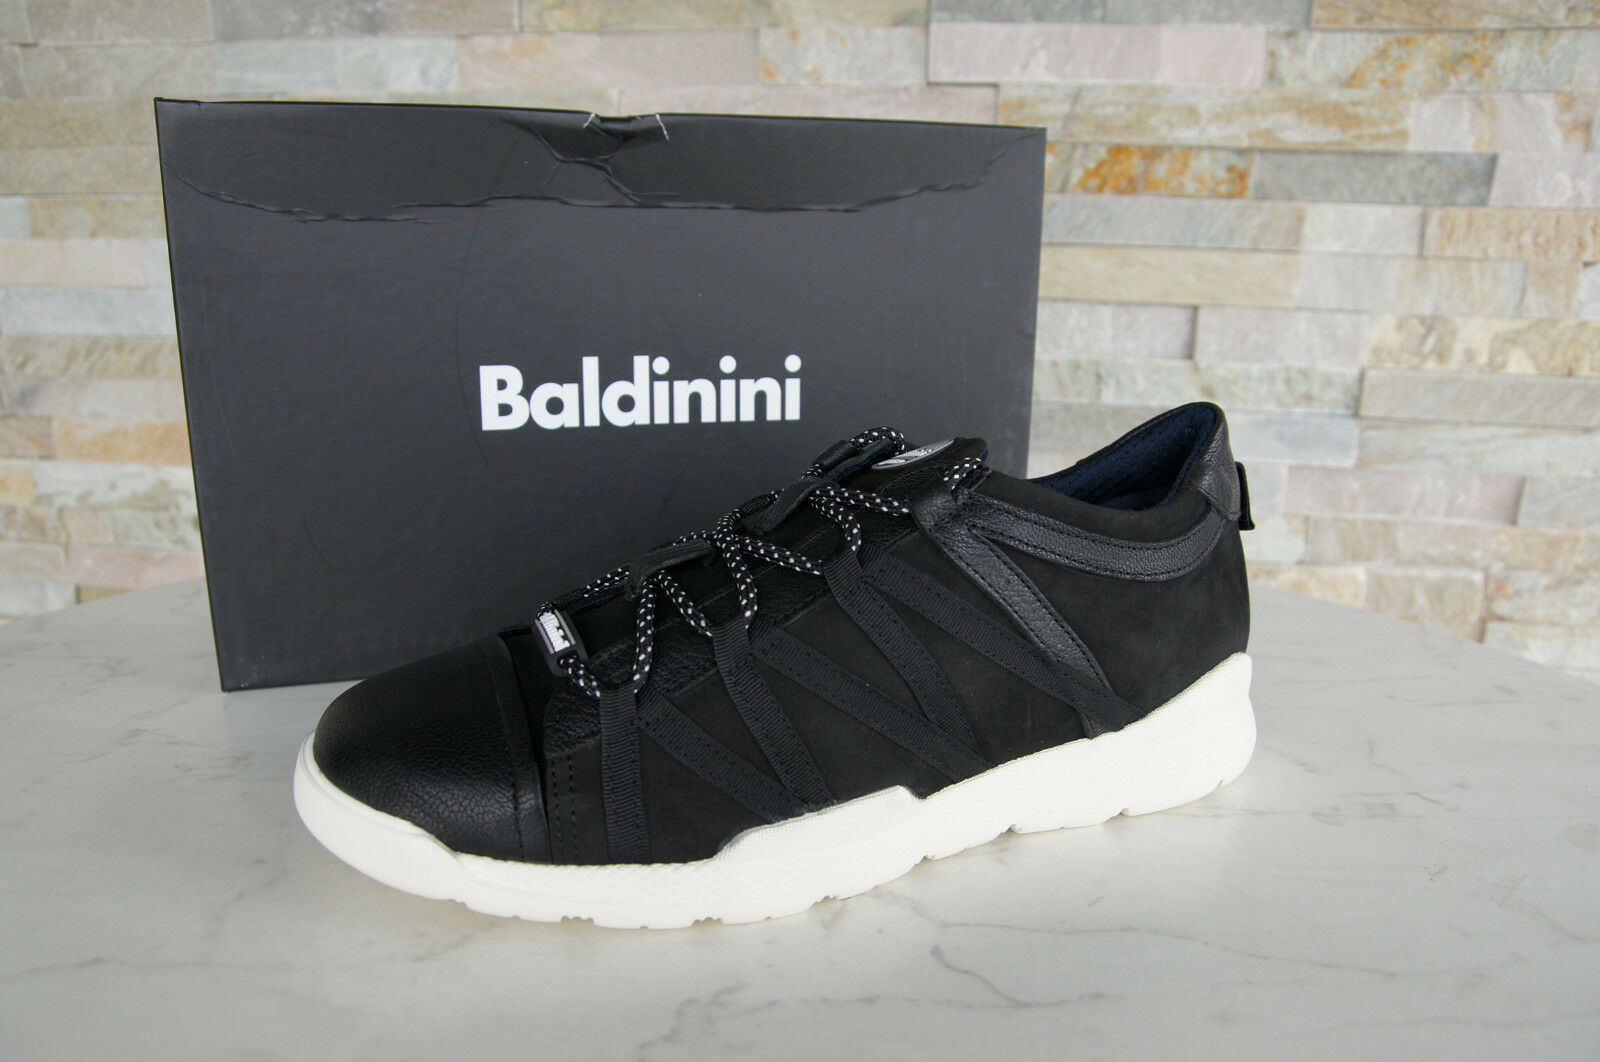 Baldinini Size 43 Sneakers Lace up Low shoes Black New Ehemuvp